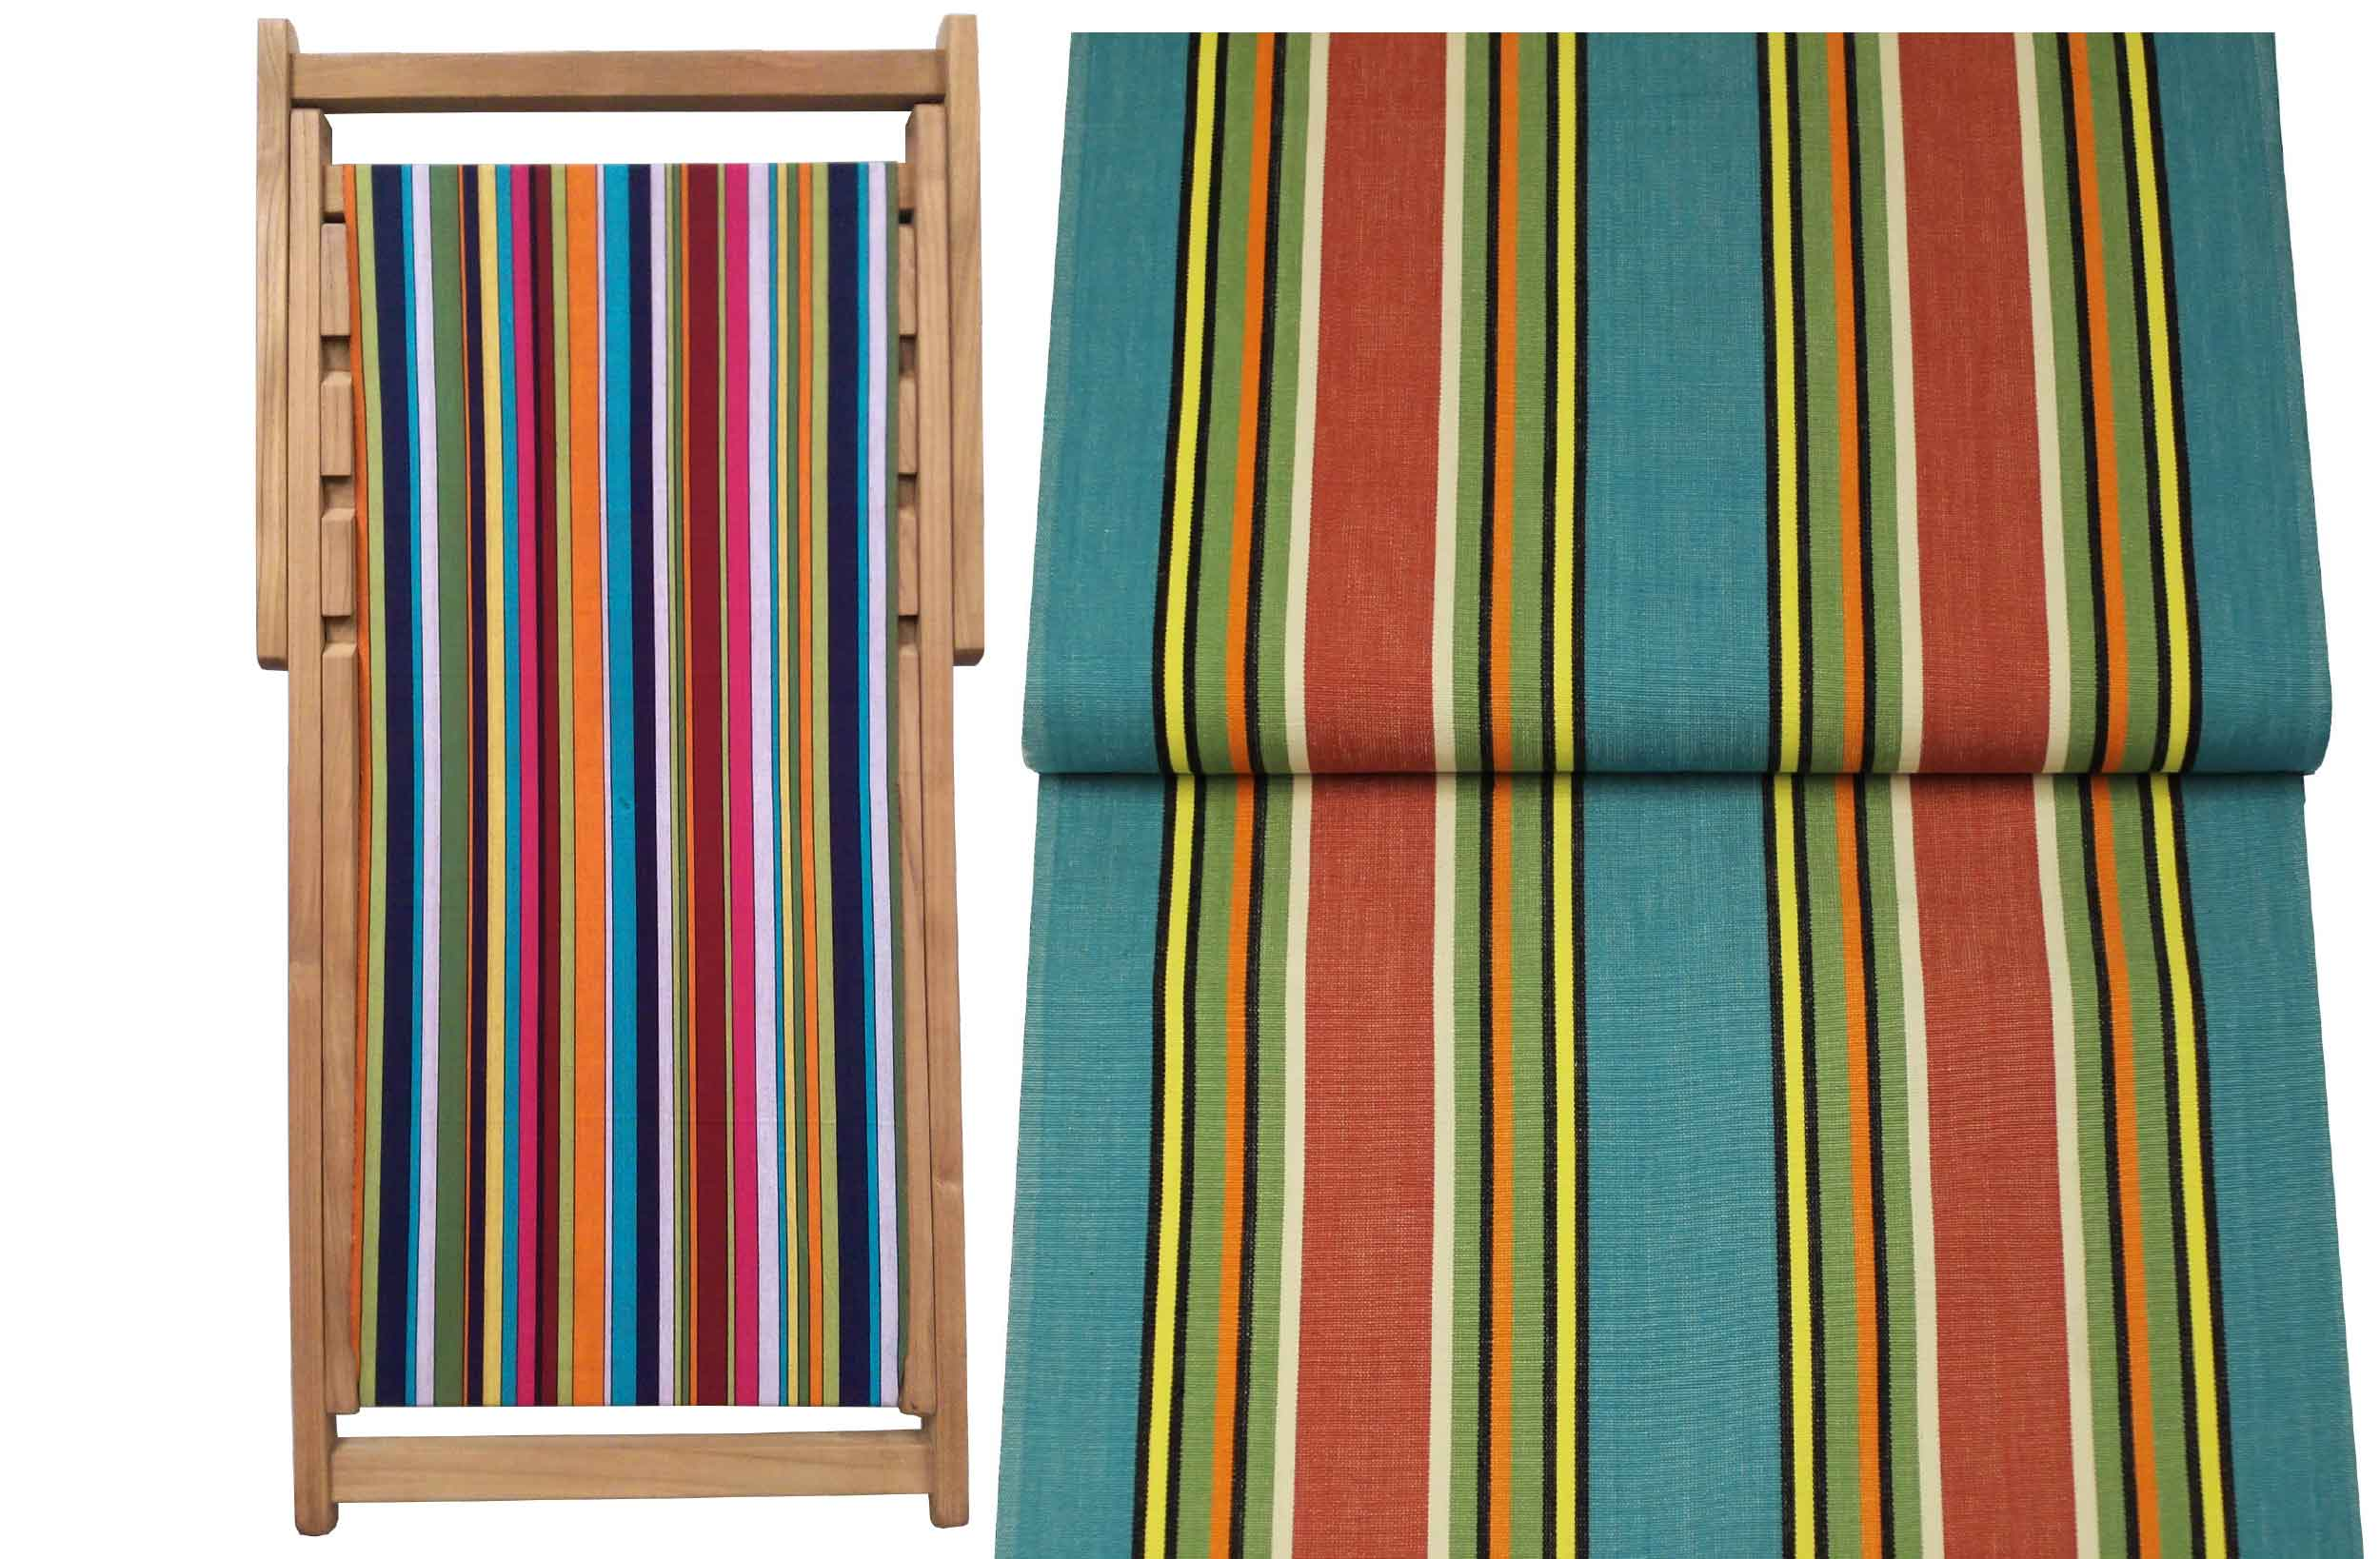 Teak Deck Chairs turquoise, terracotta, green stripes